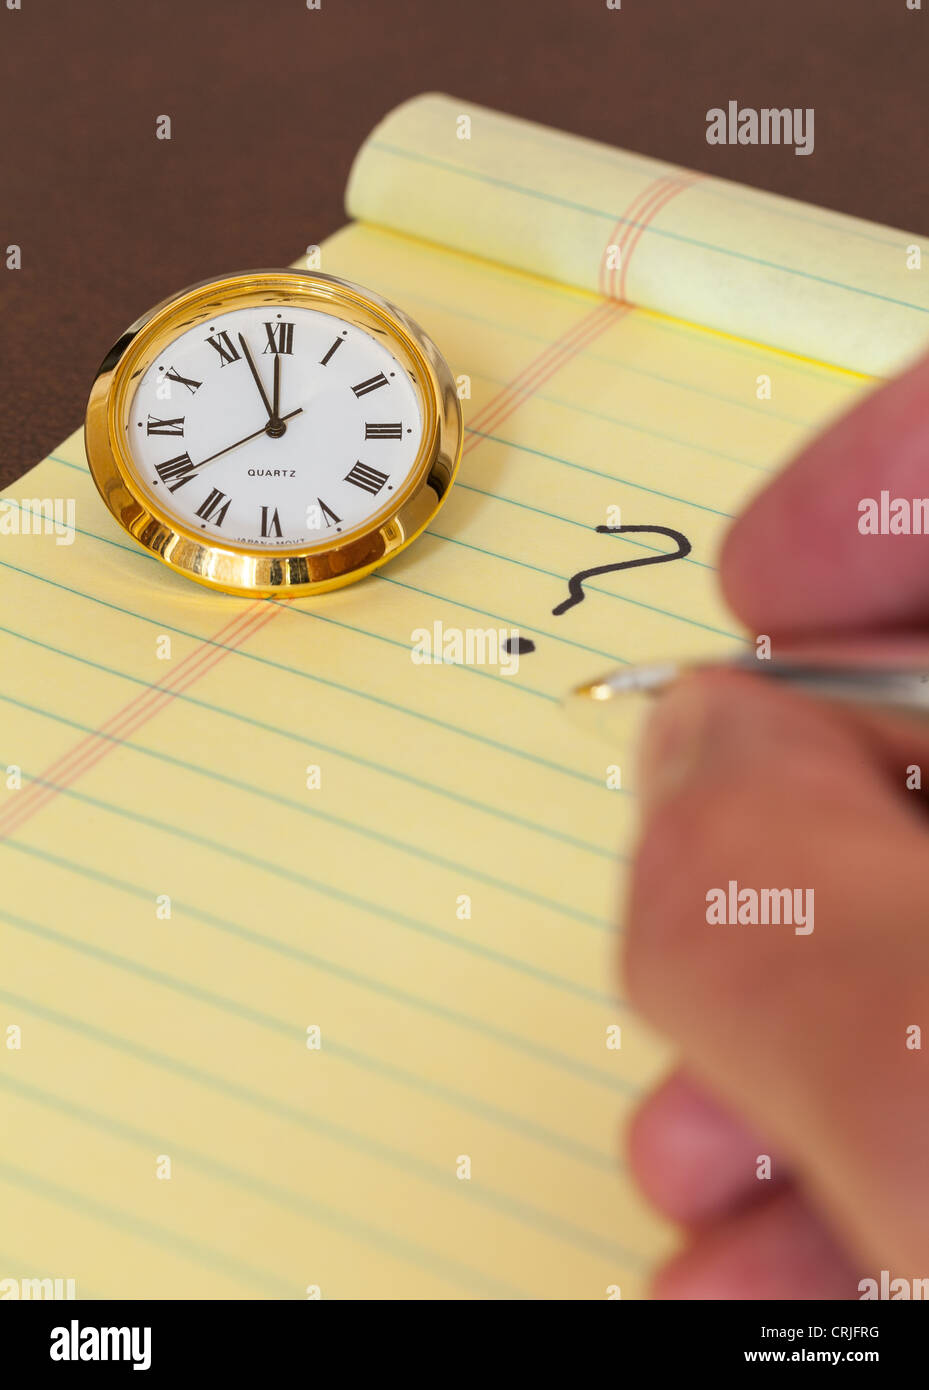 Concept for urgent decision making with clock on paper and question mark on pad - Stock Image